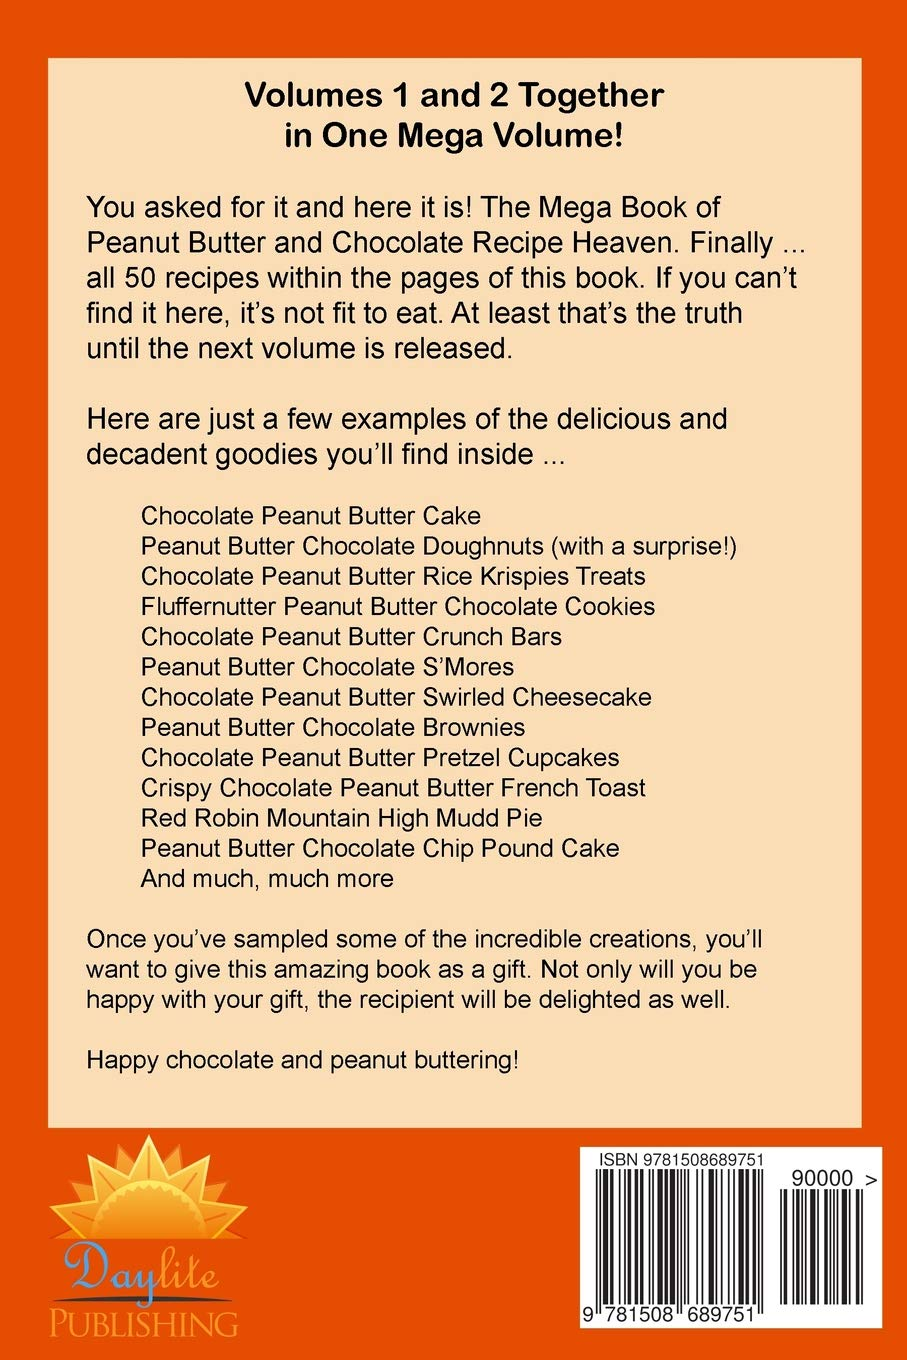 Peanut Butter and Chocolate Recipe Heaven Volumes 1 and 2: Tiffany